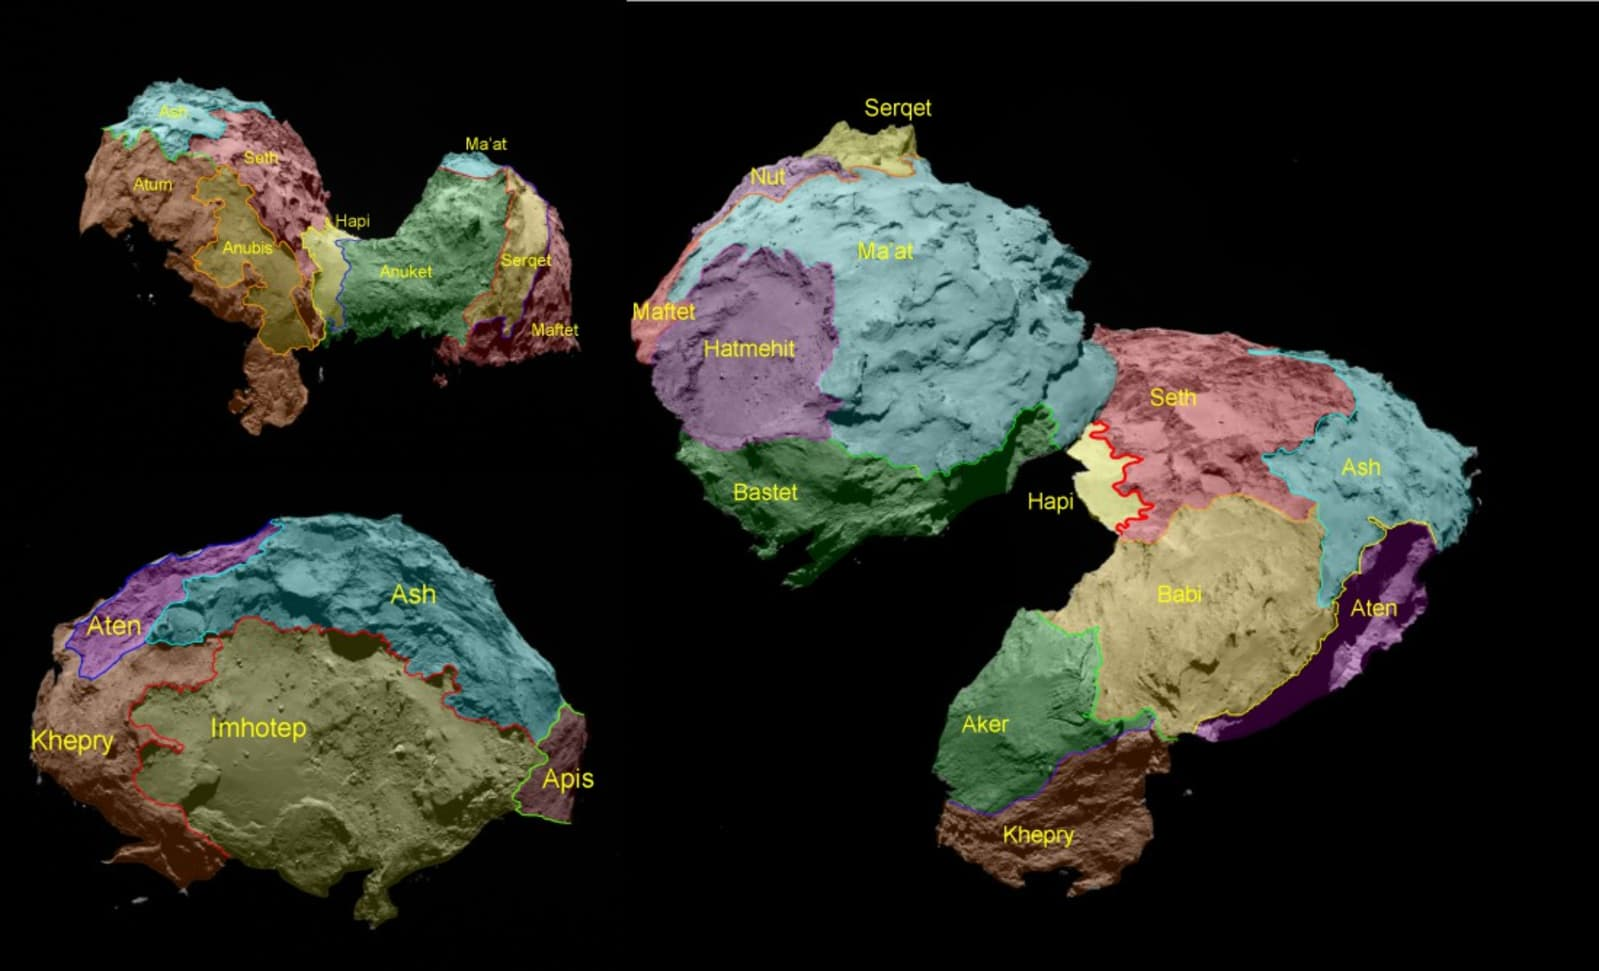 face location - the different sides of 67P/TG are colored to show it's different regions named after egyptian gods - egyptian gods, meteor, colors - paul lahana